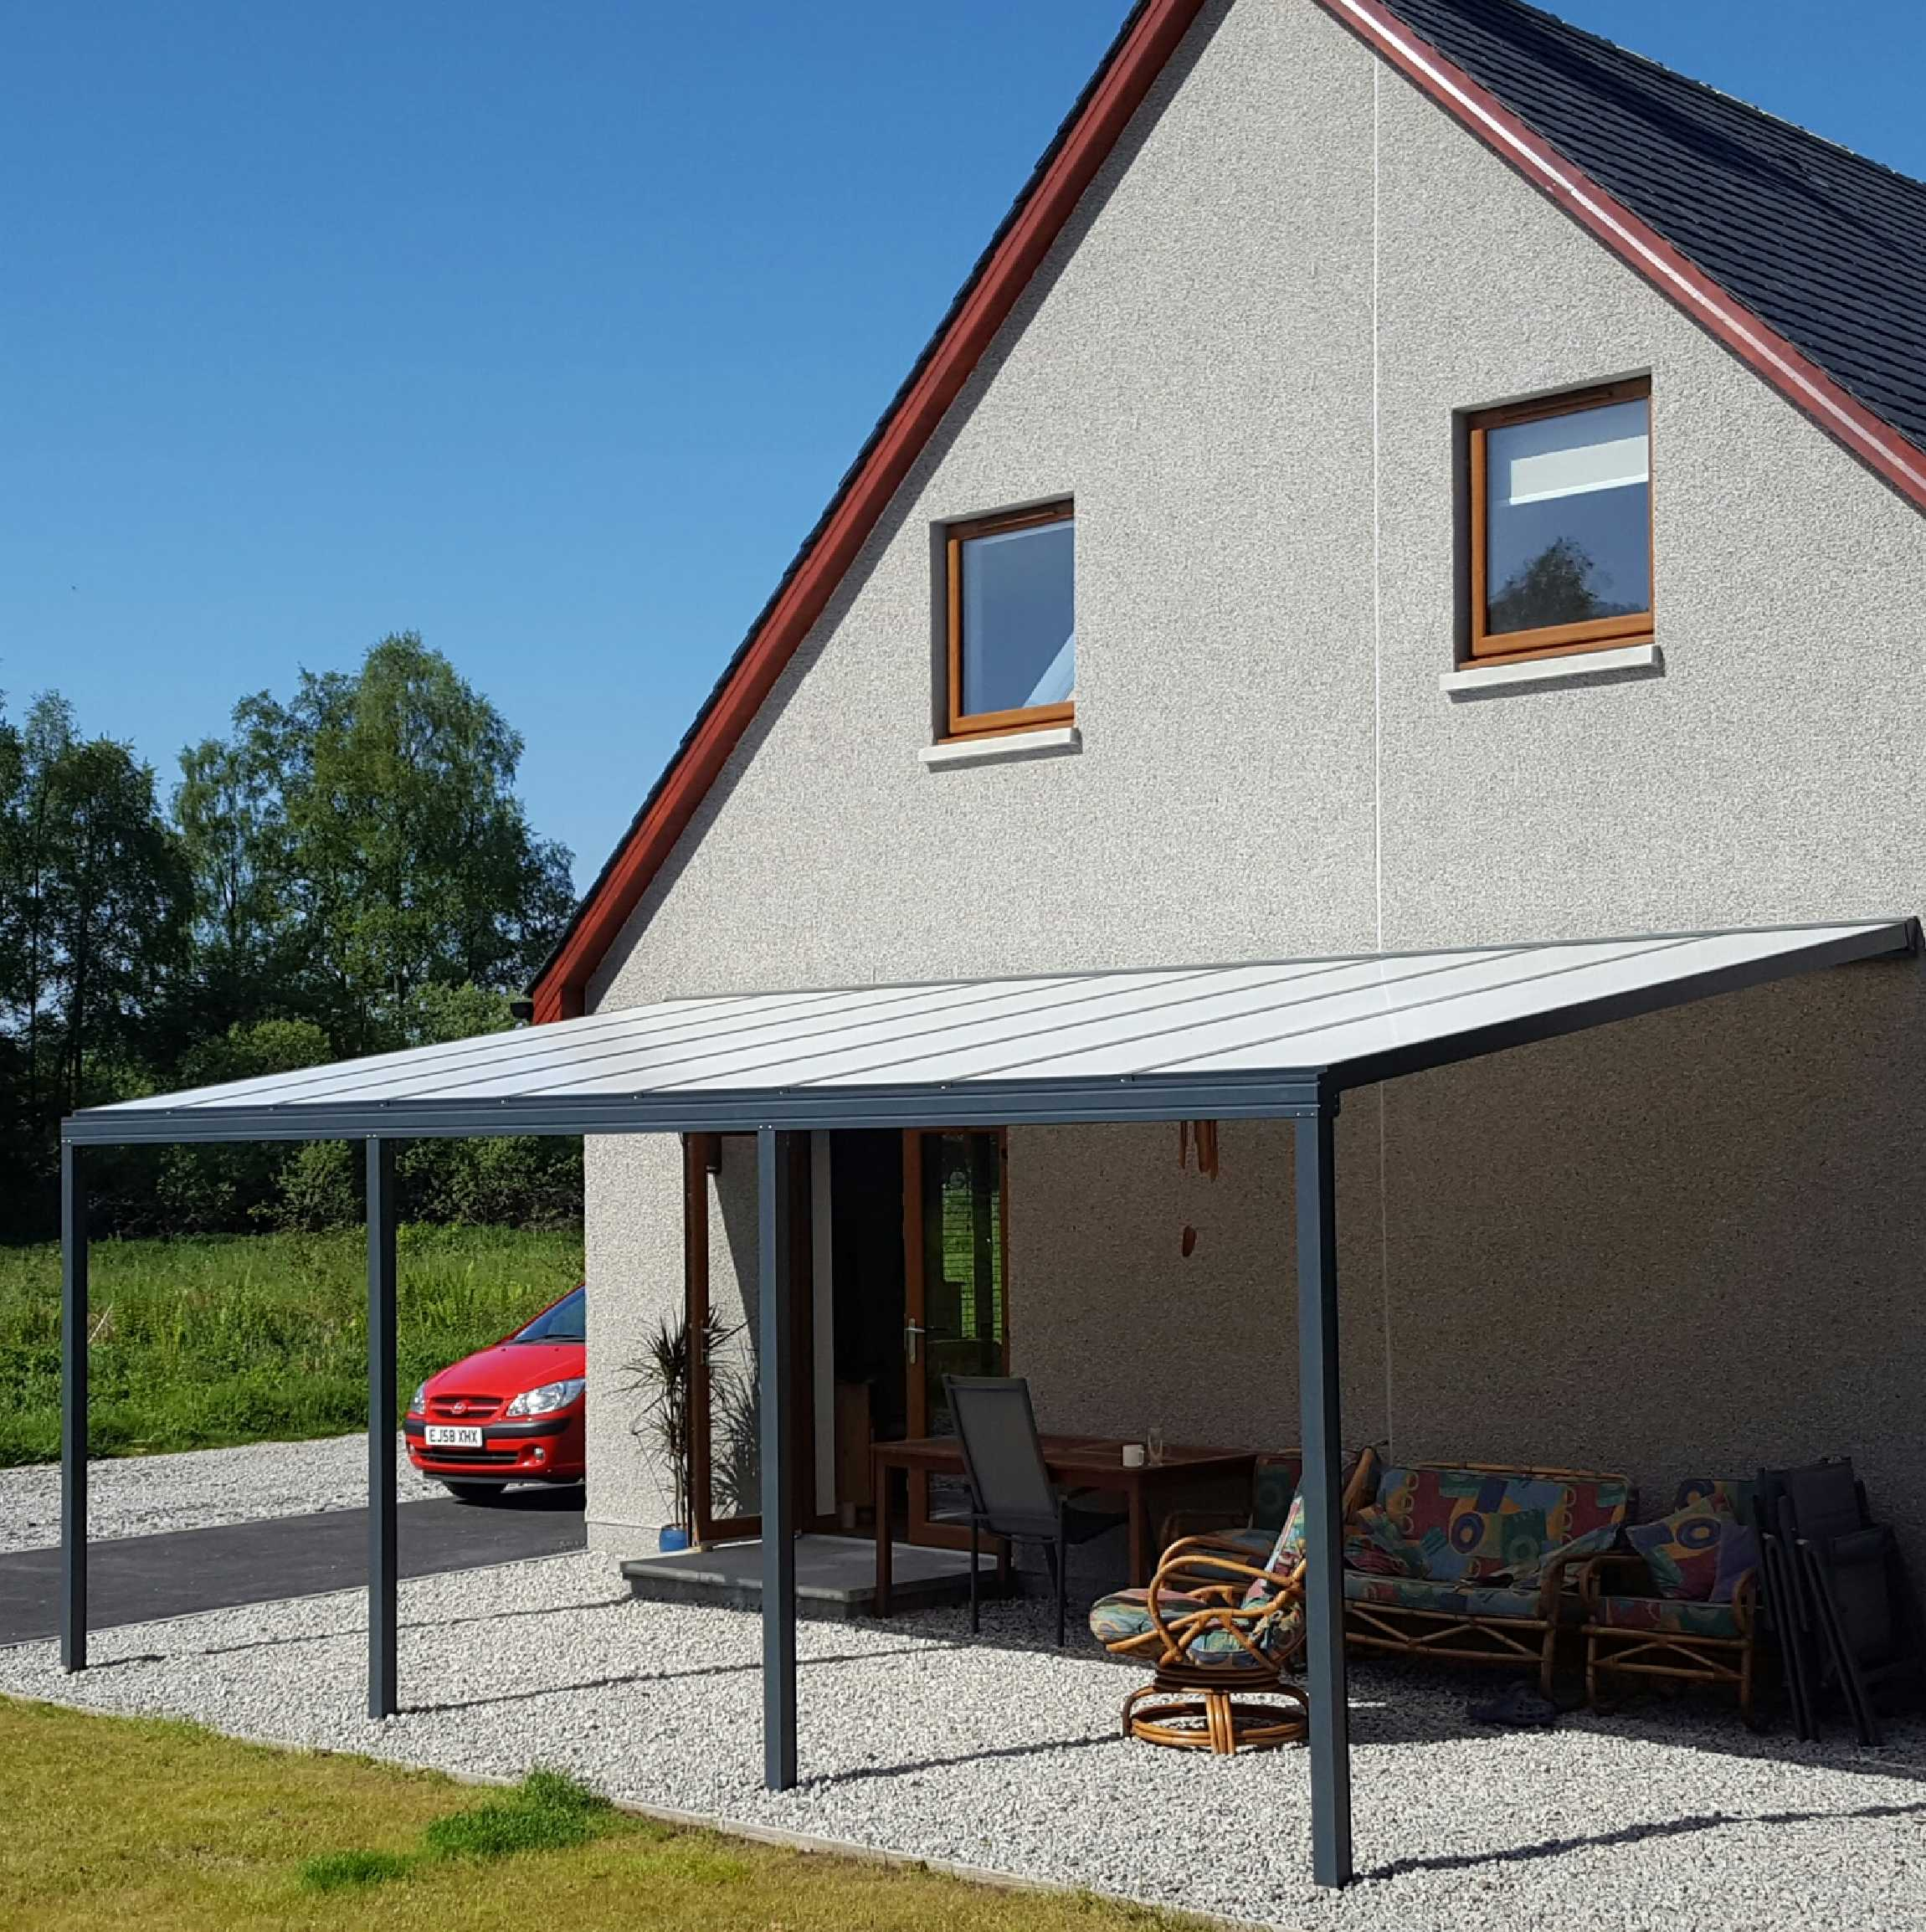 Great selection of Omega Smart Lean-To Canopy, Anthracite Grey, 16mm Polycarbonate Glazing - 3.5m (W) x 4.5m (P), (3) Supporting Posts